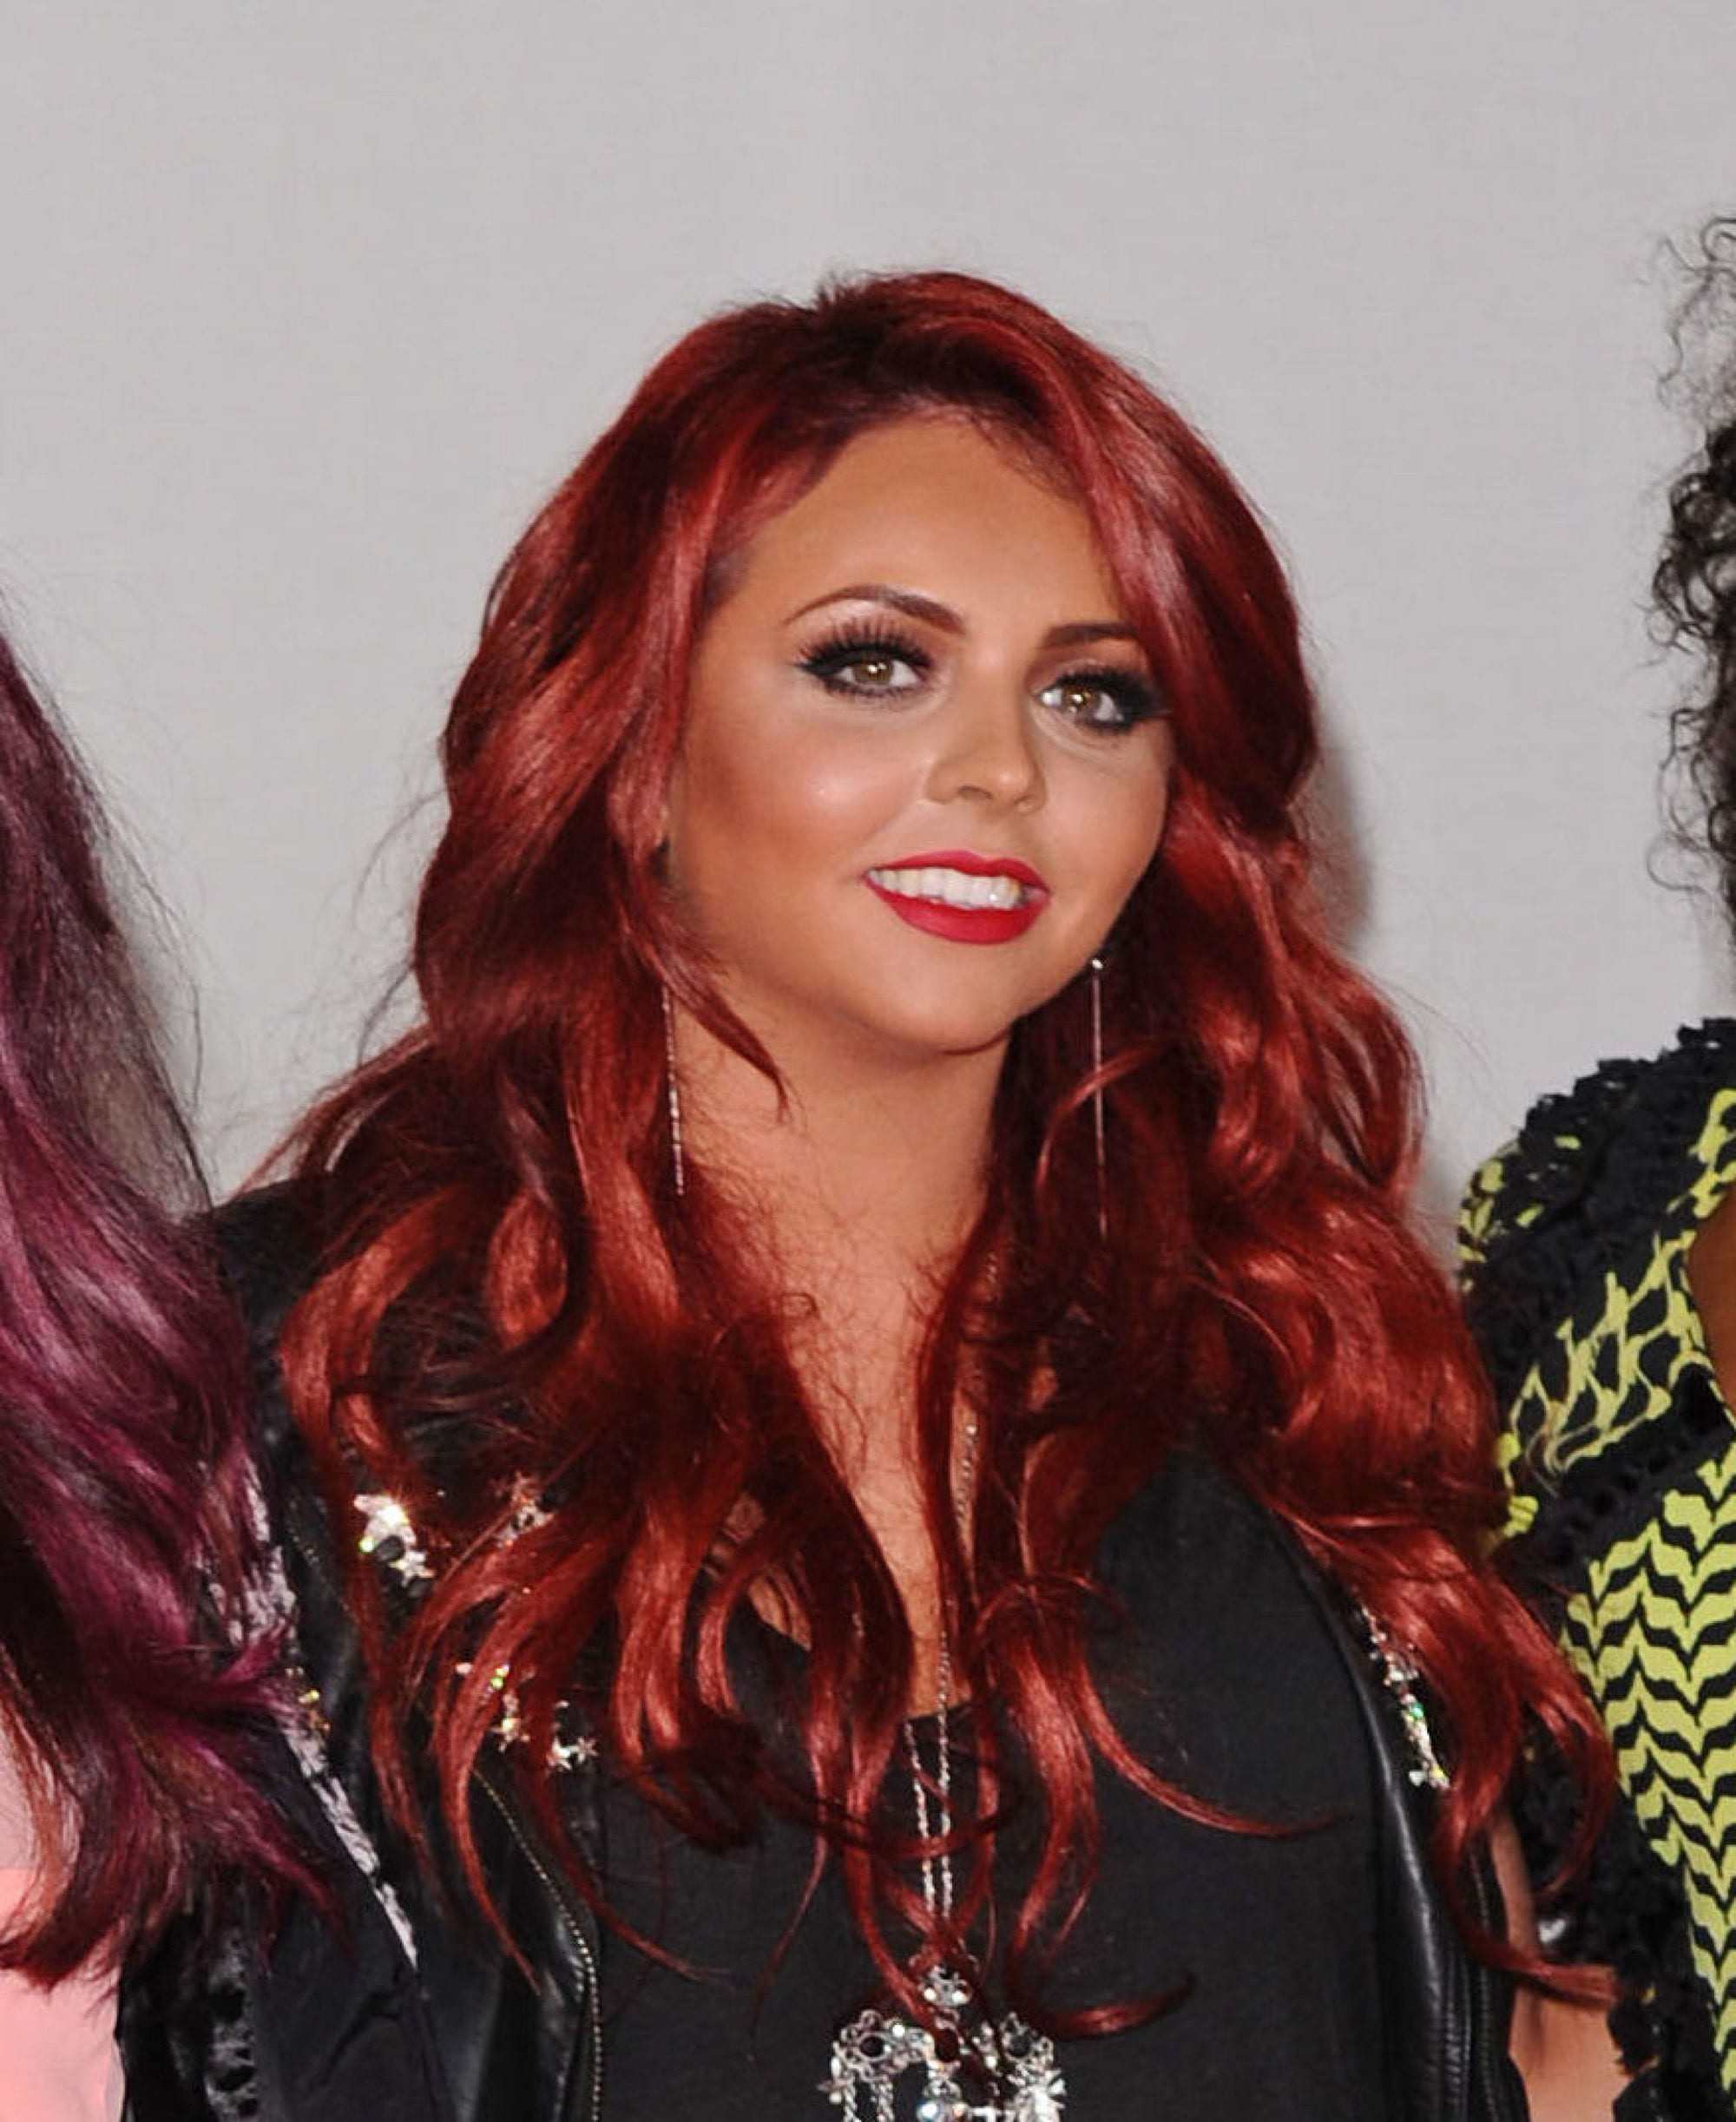 jesy nelson with ariel red hair in 2012